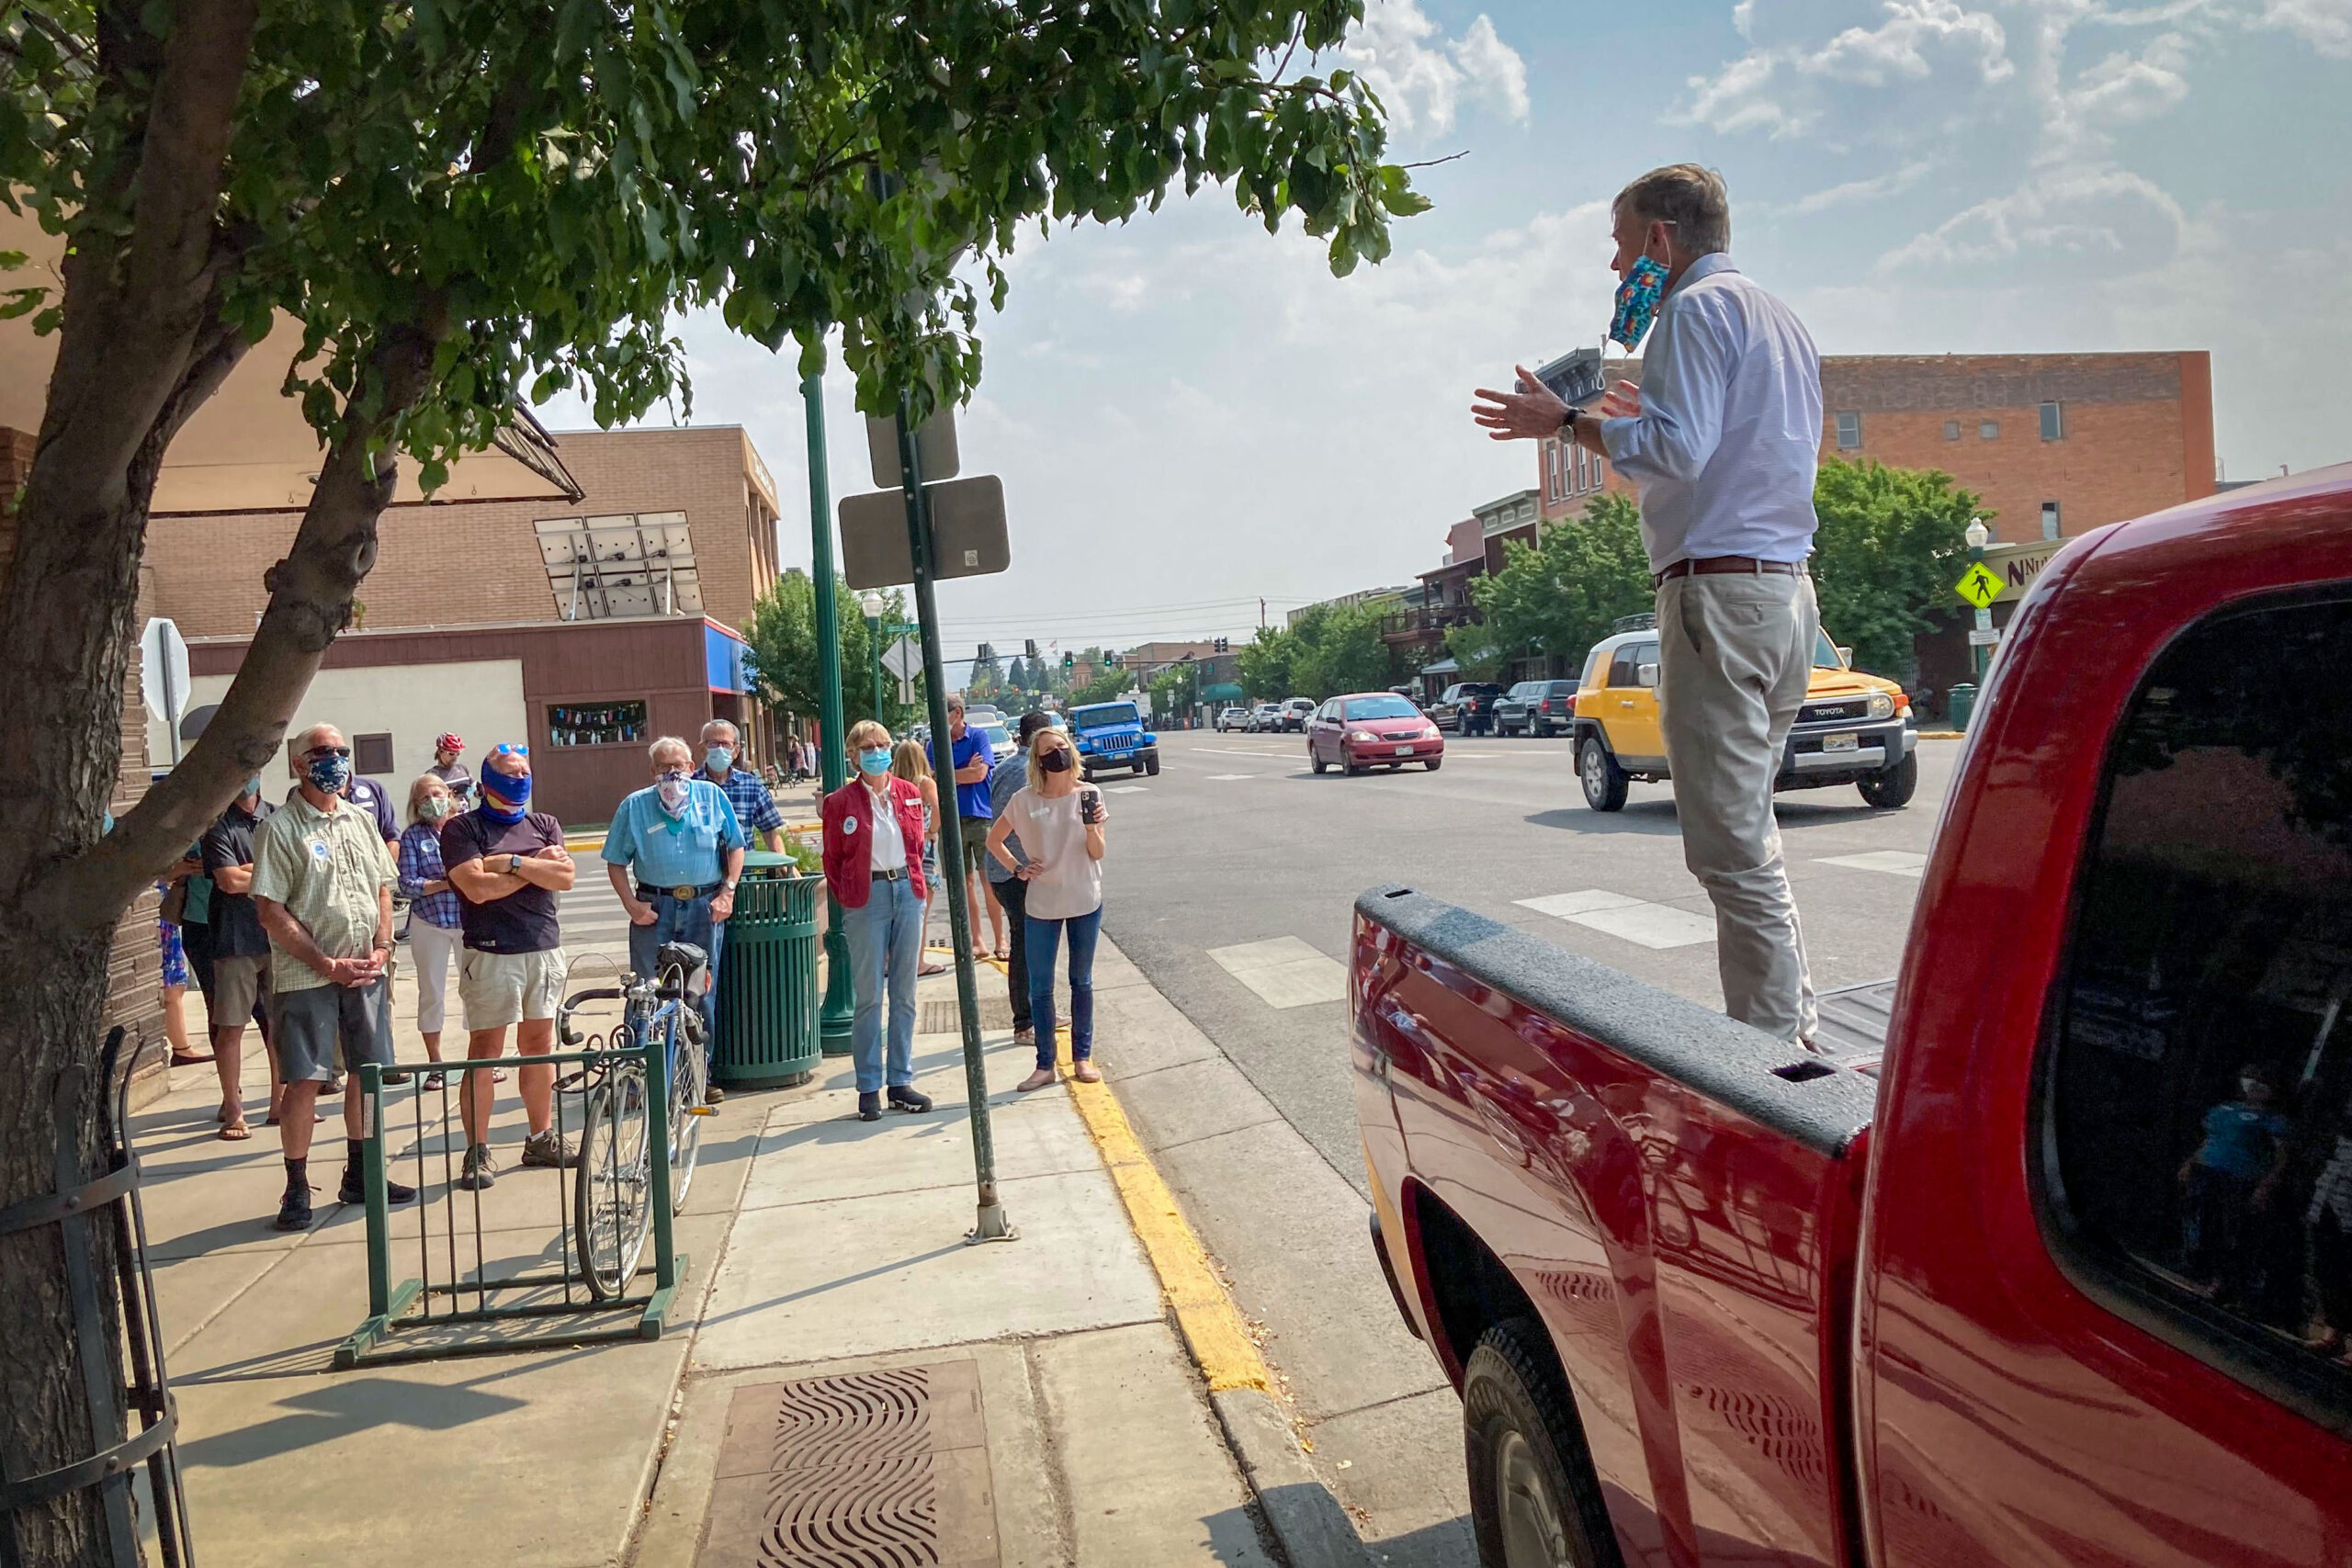 John Hickenlooper campaigns in Gunnison from a pickup truck, Saturday, Aug. 22, 2020. The former governor is challenging Sen. Cory Gardner for his seat.